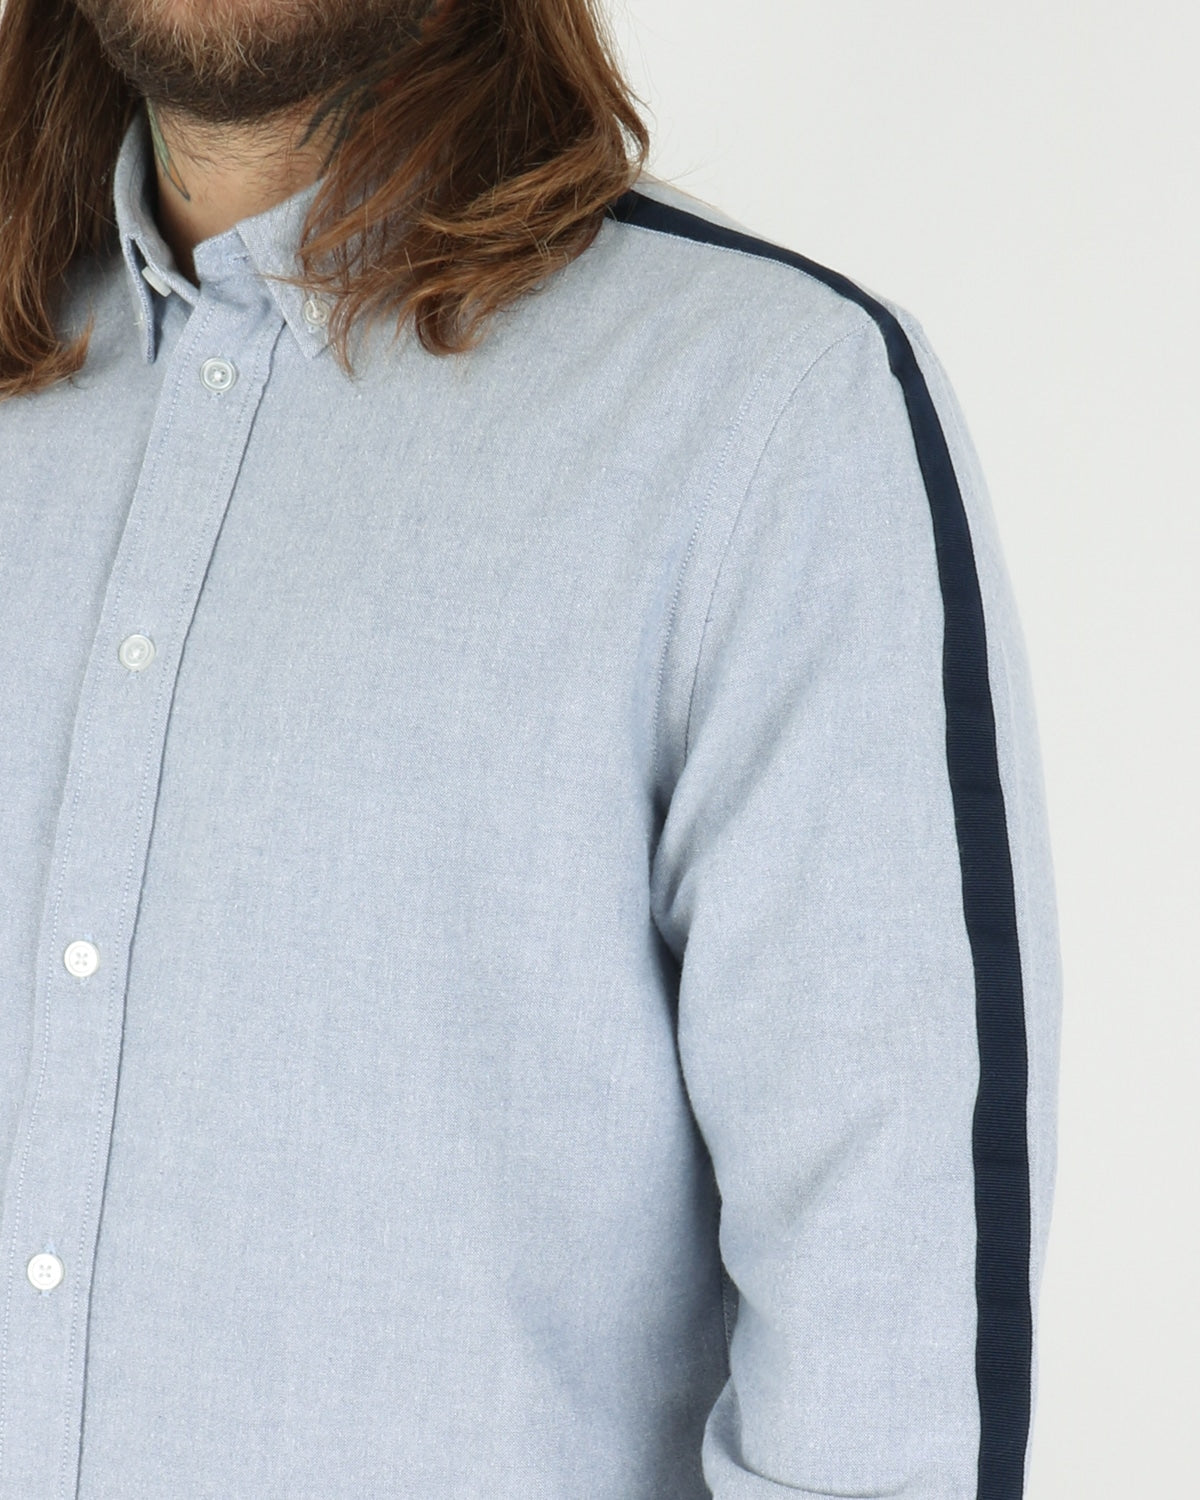 we are copenhagen_novak ls shirt_light blue_view_3_3